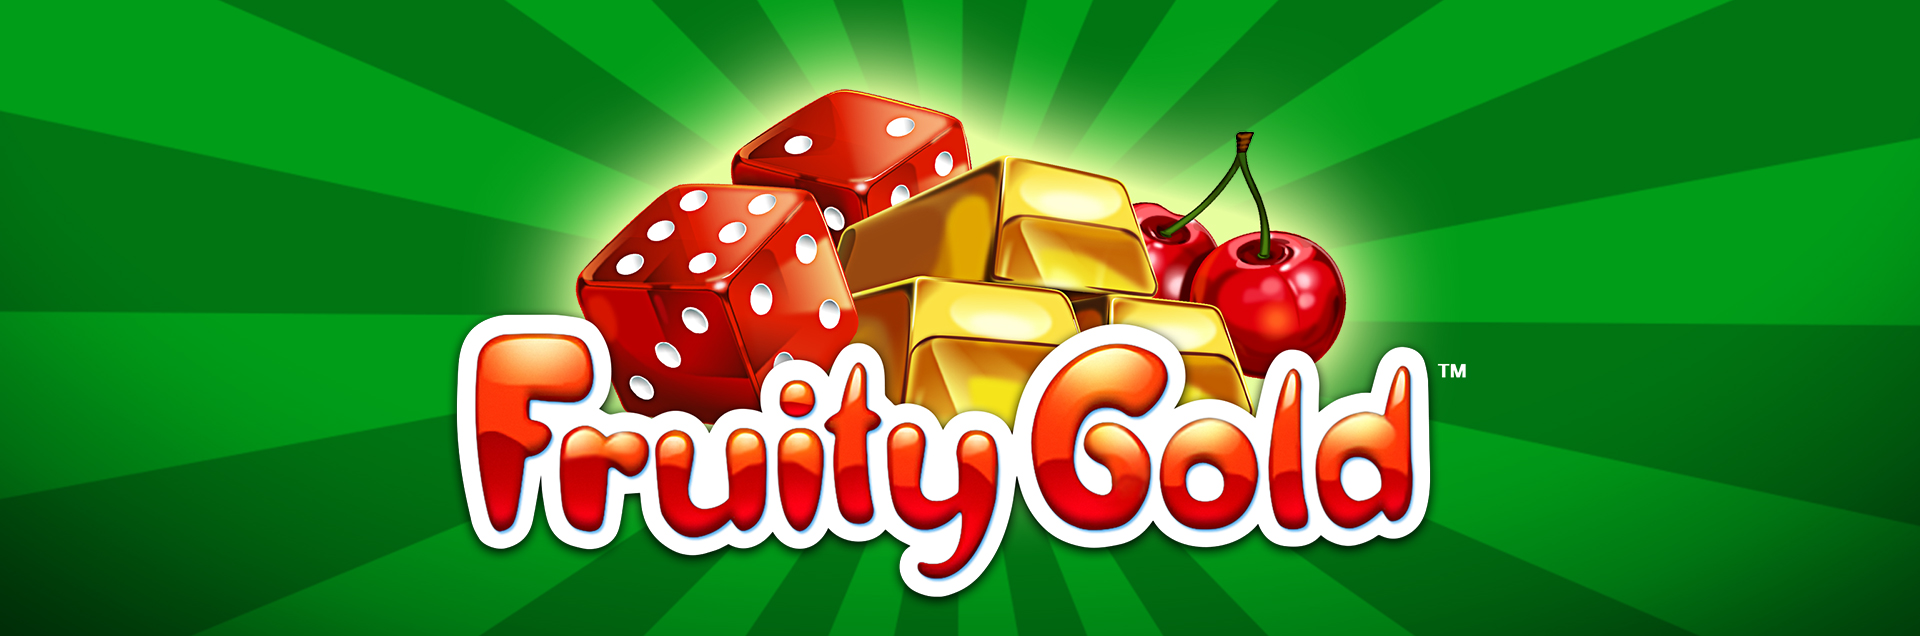 Fruity Gold Homepage Header Games